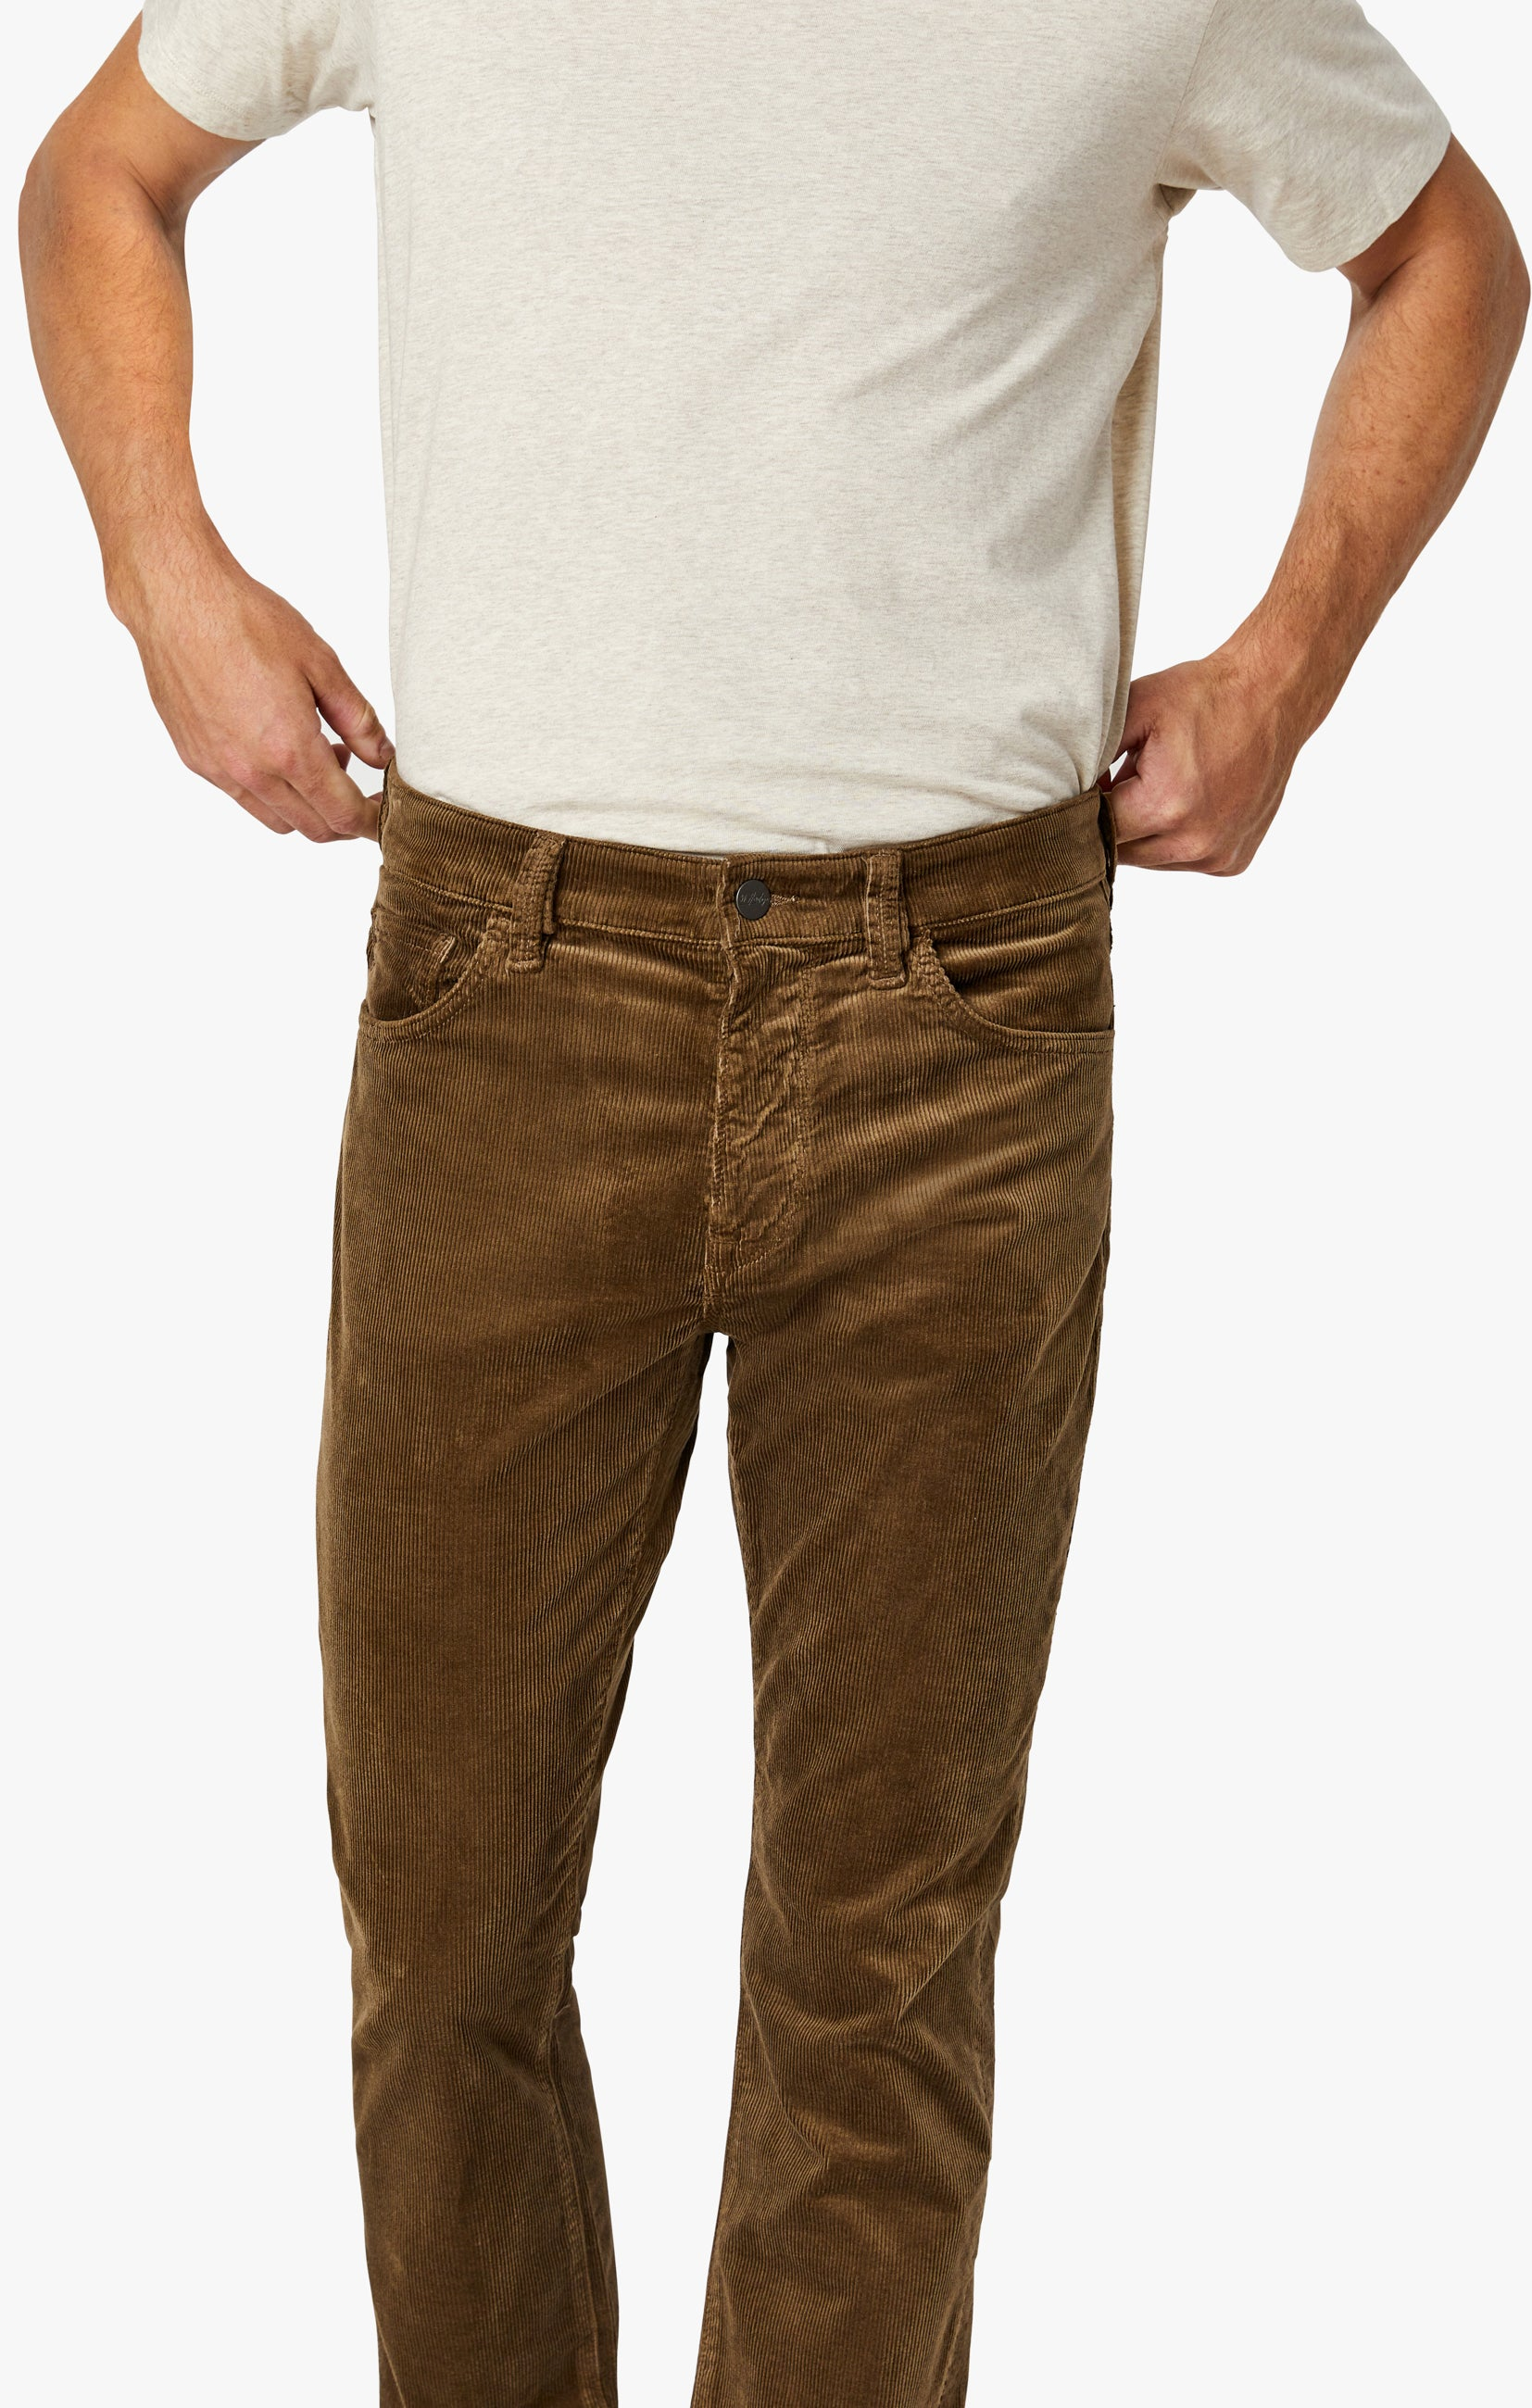 Charisma Relaxed Straight Pants in Tobacco Cord Image 6